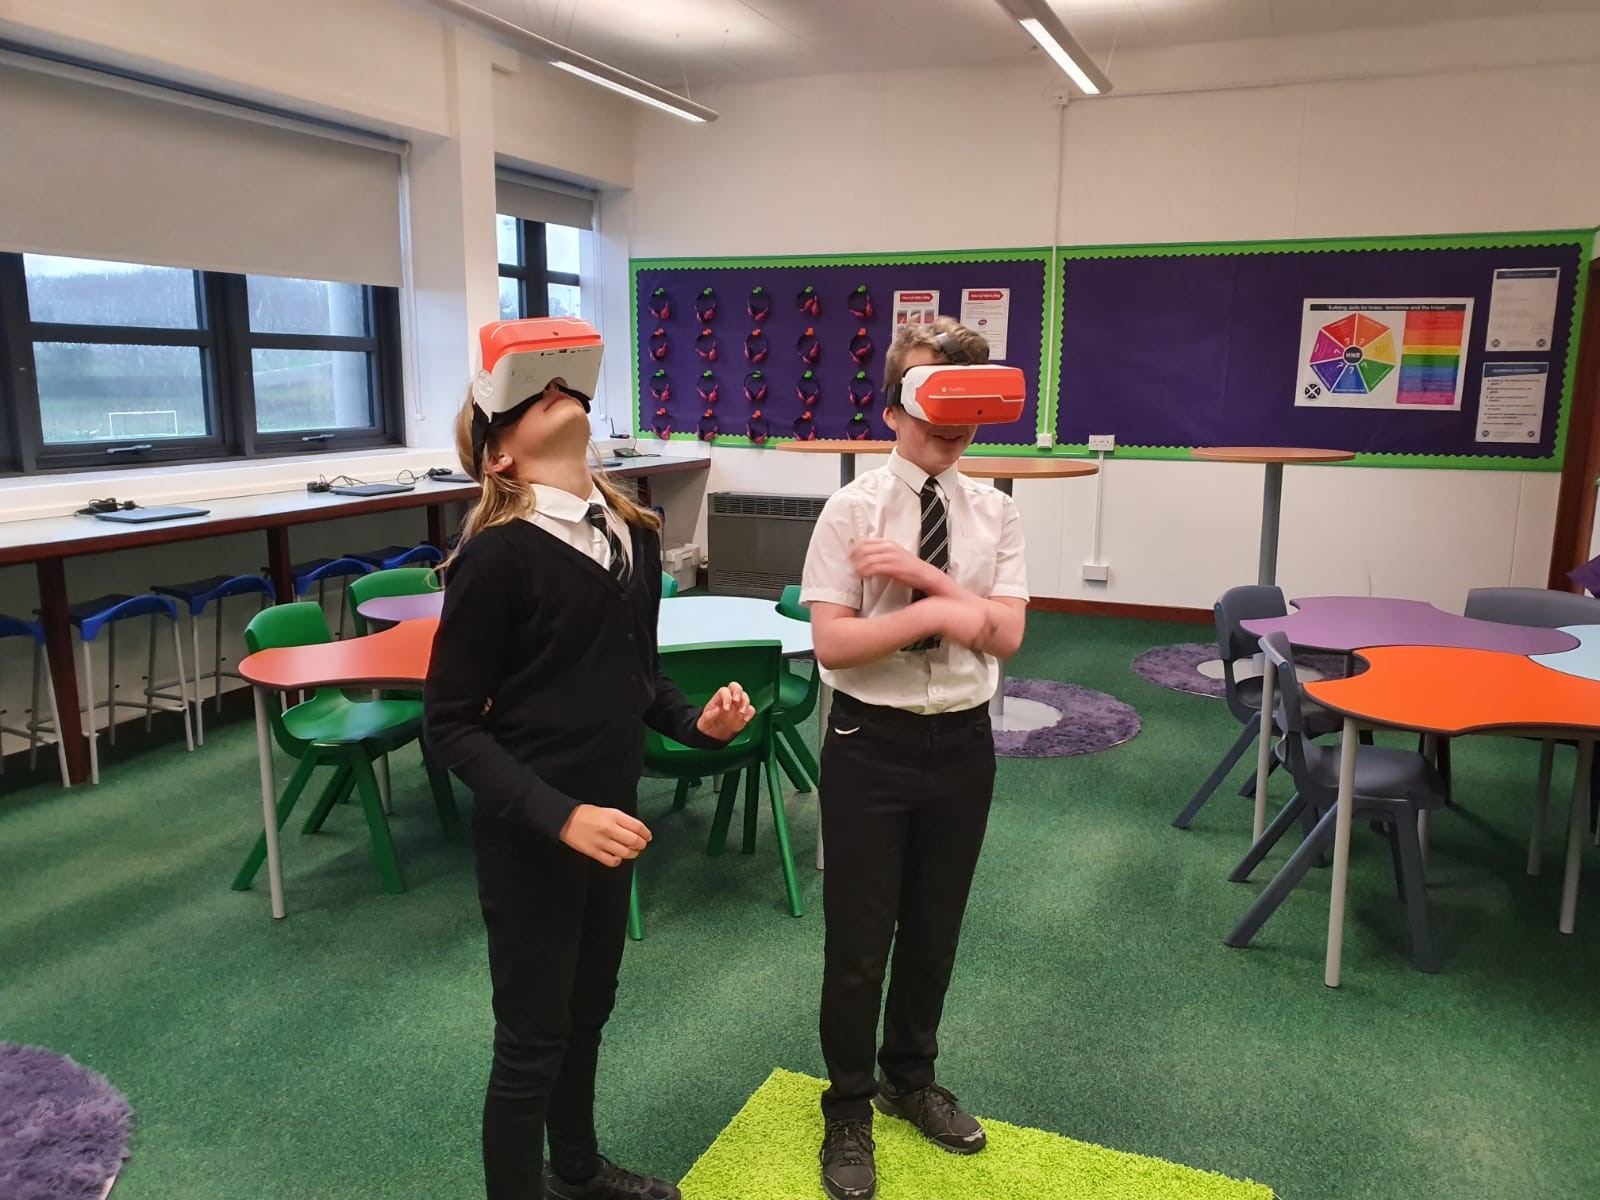 Pupils using the VR headsets.